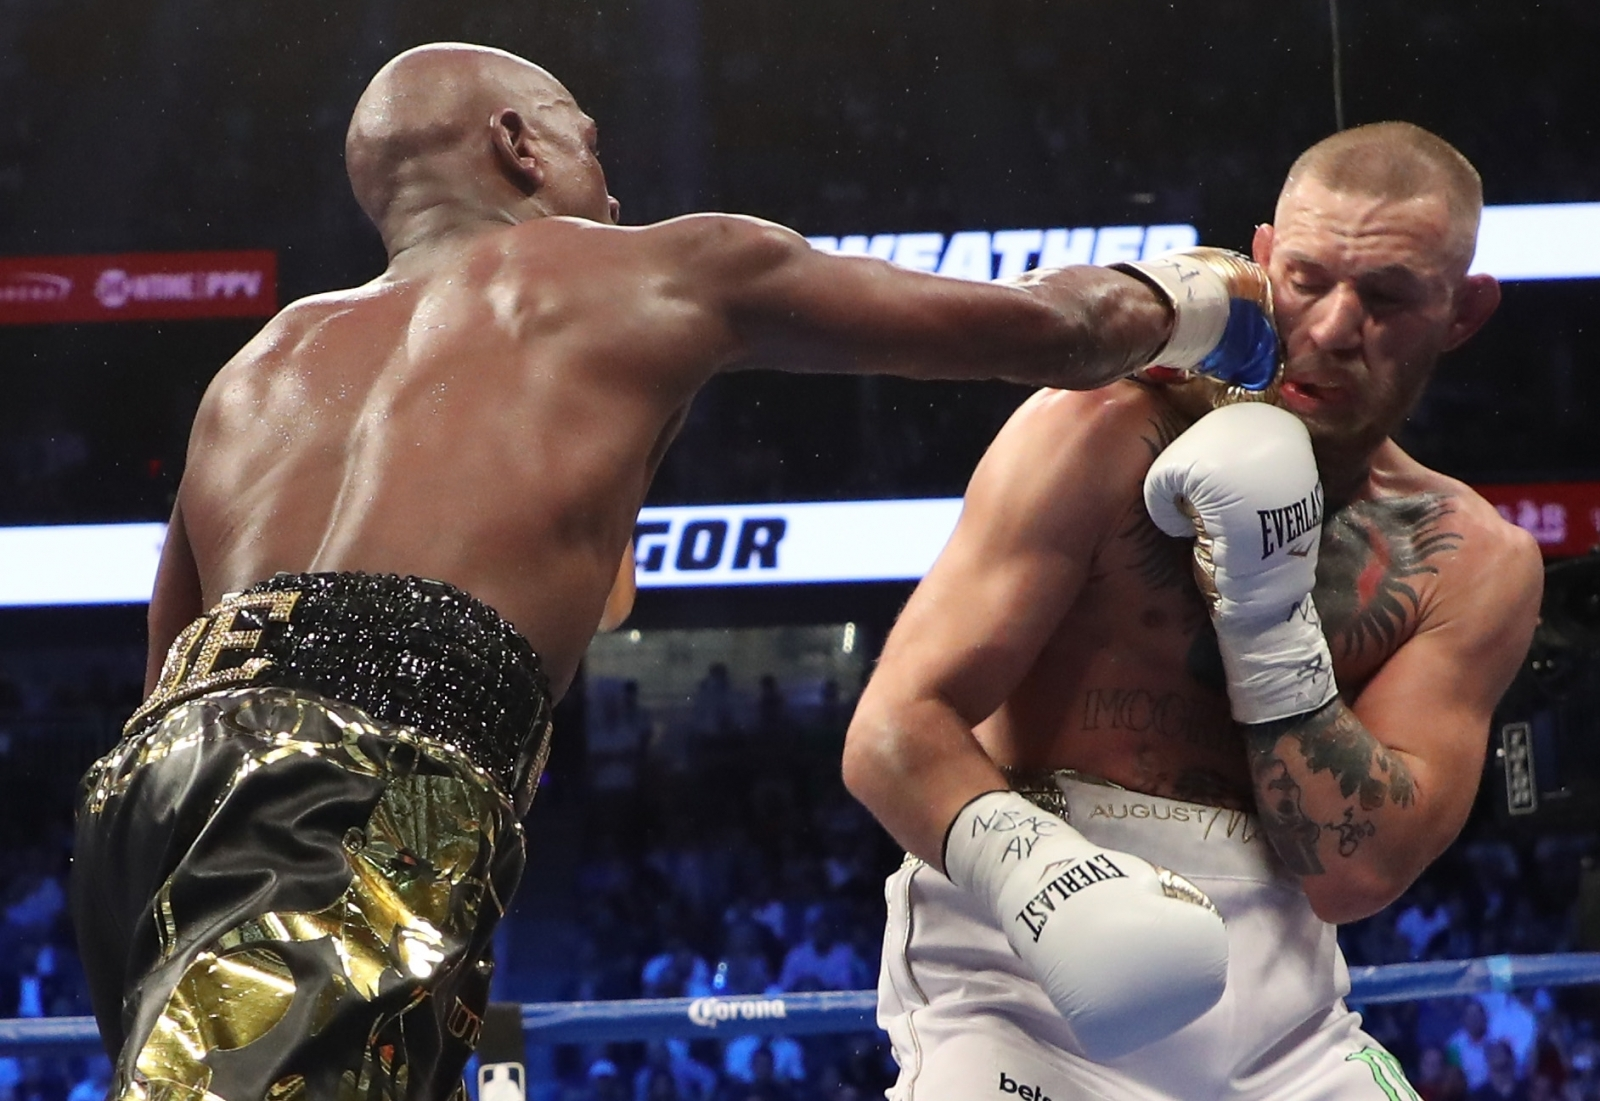 Conor Mcgregor Vs. Floyd Mayweather